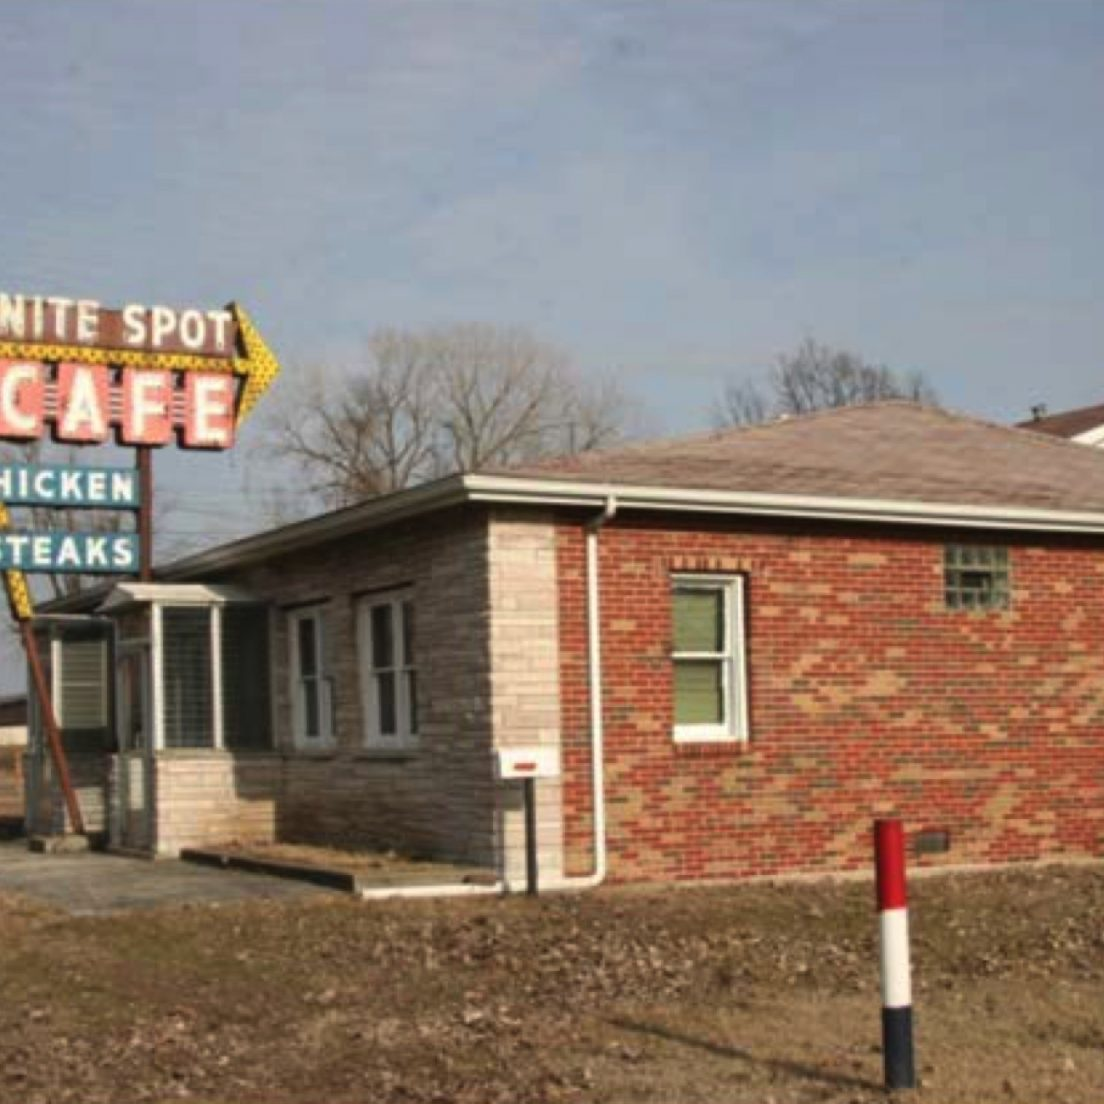 Nite Spot Cafe (Photograph: Illinois Route 66 Scenic Byway)